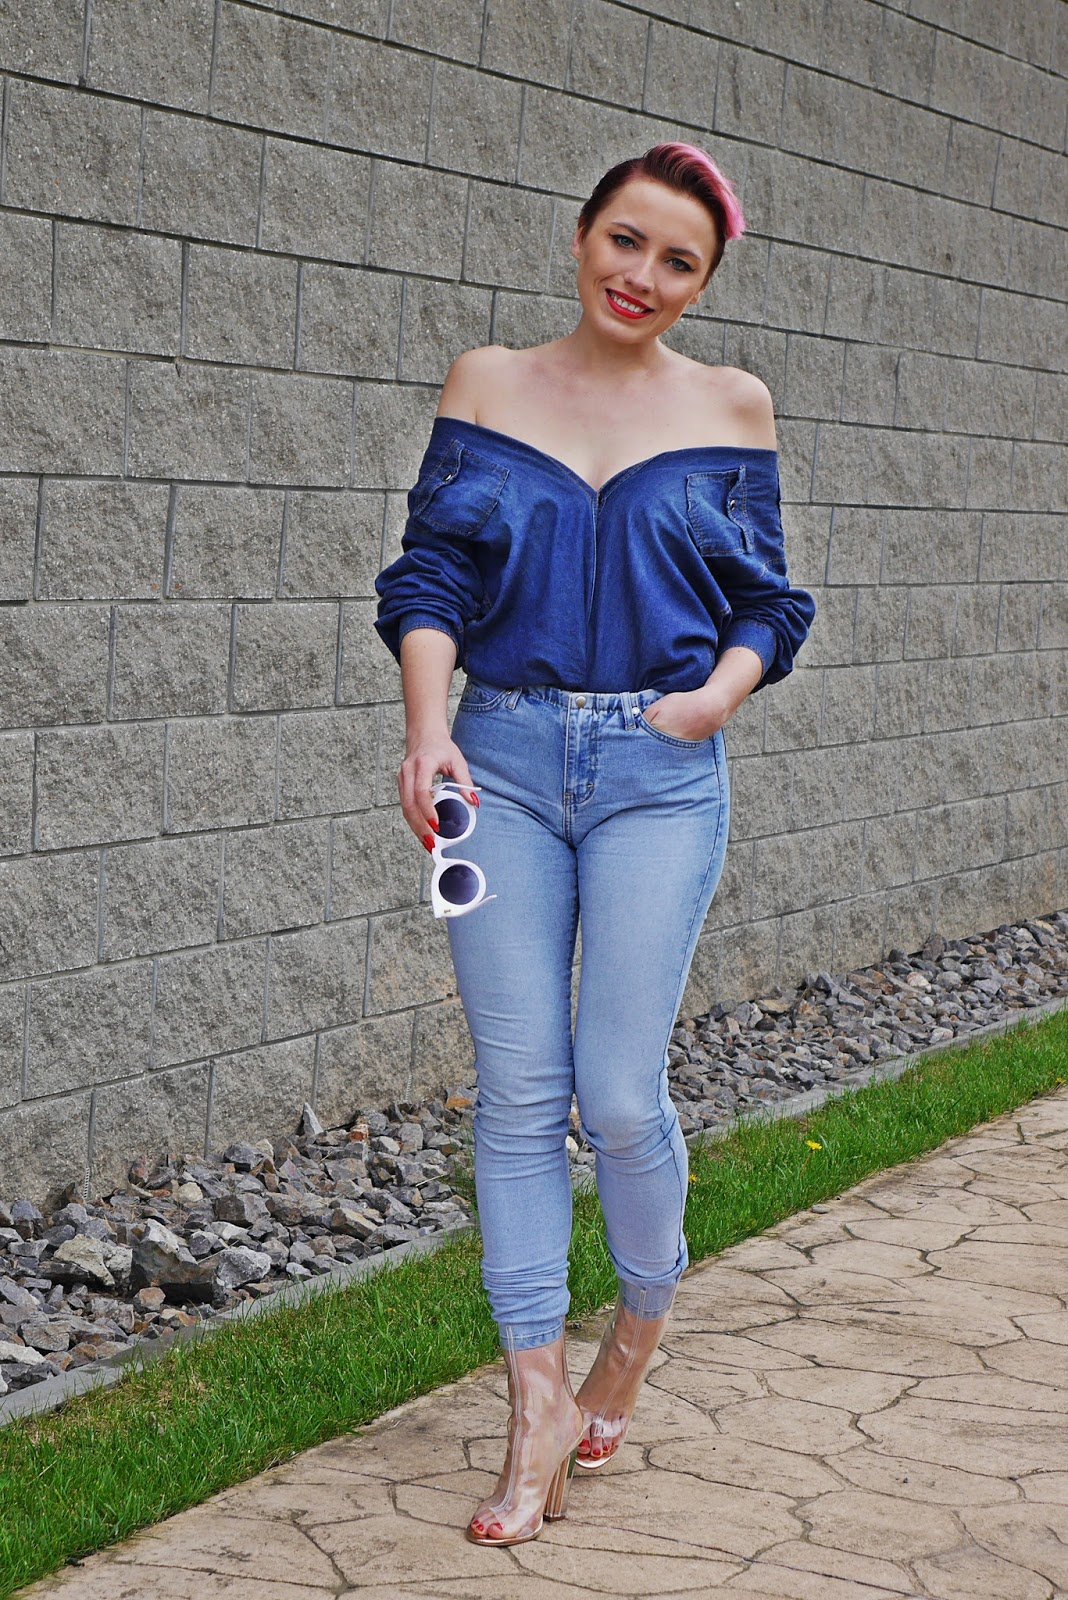 denim_look_jeans_ootd_karyn_blog_050517b